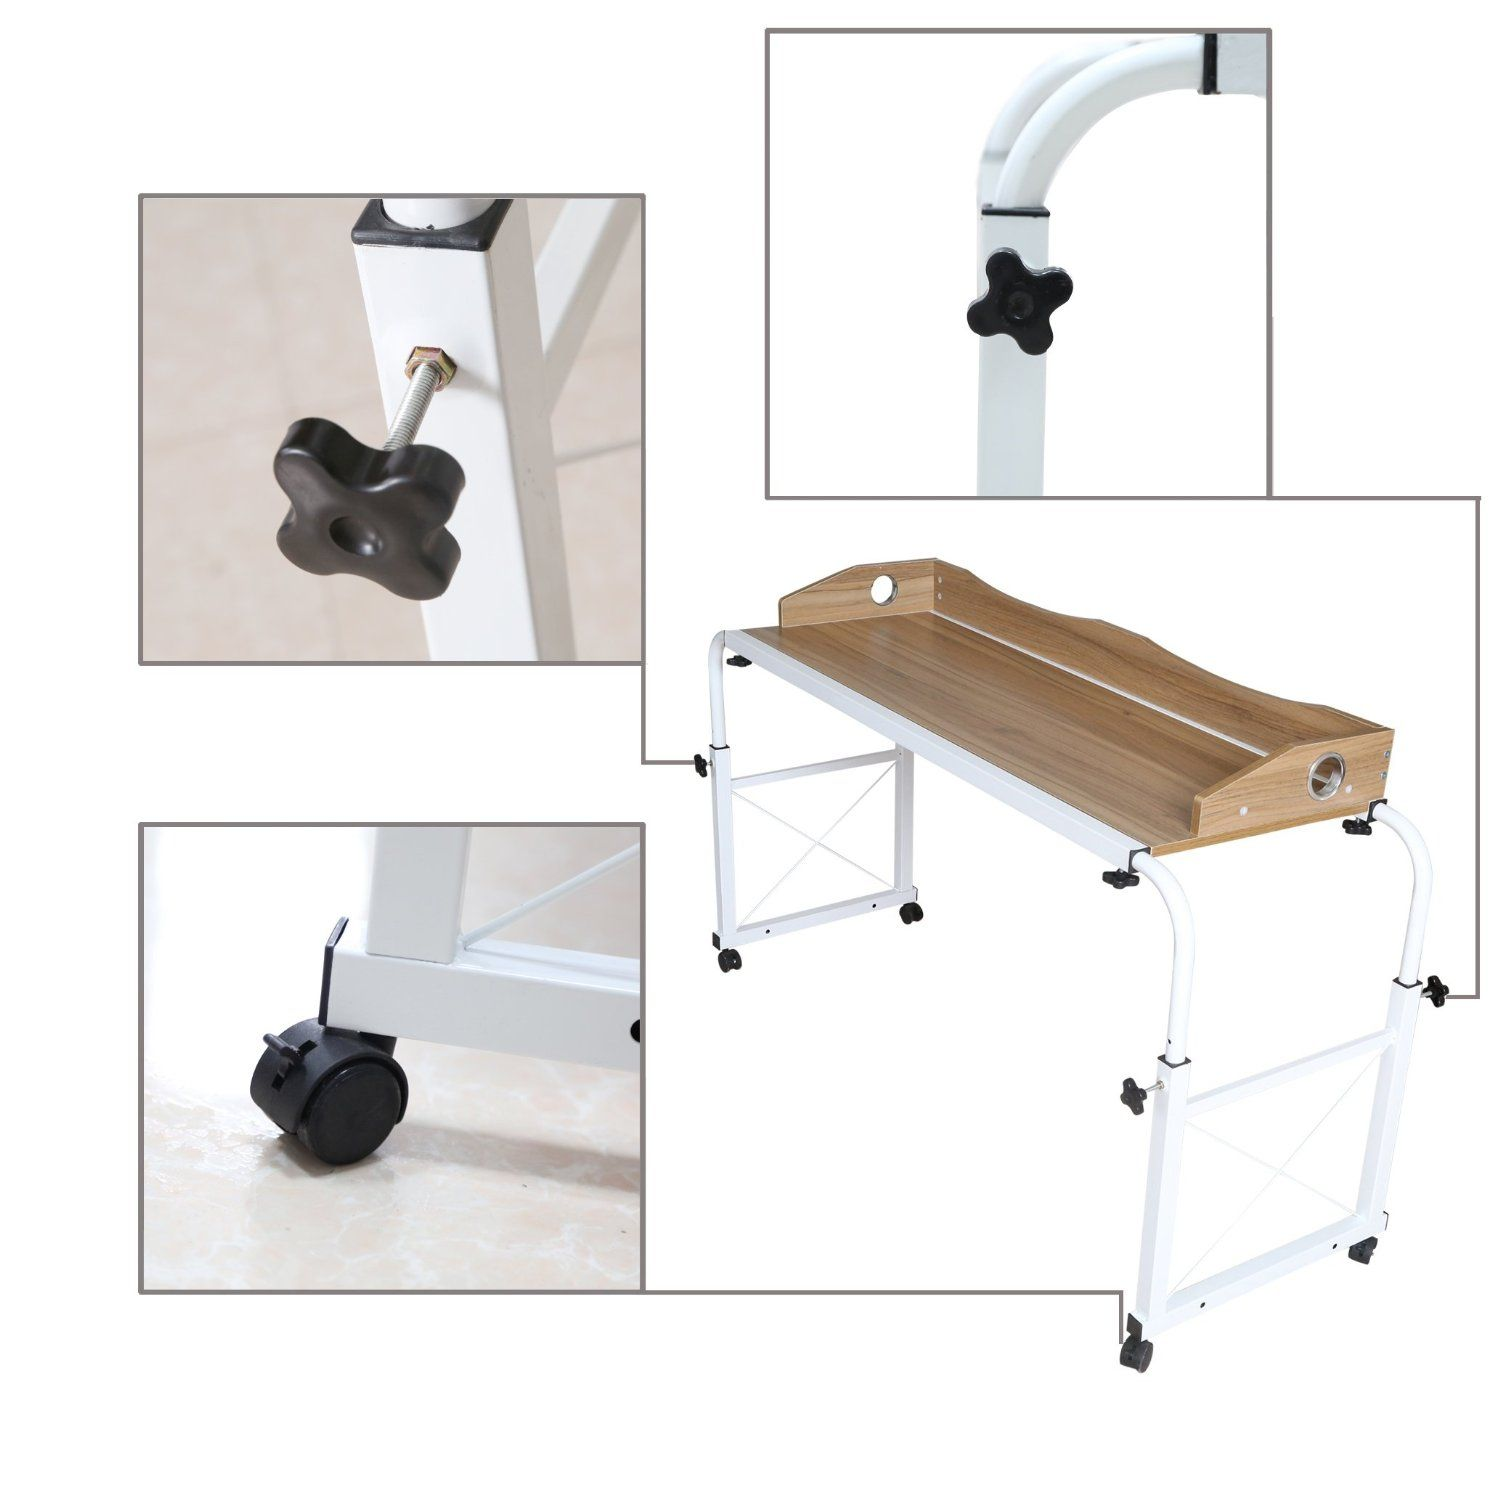 of wheels casters height table adjustable overbed with new side